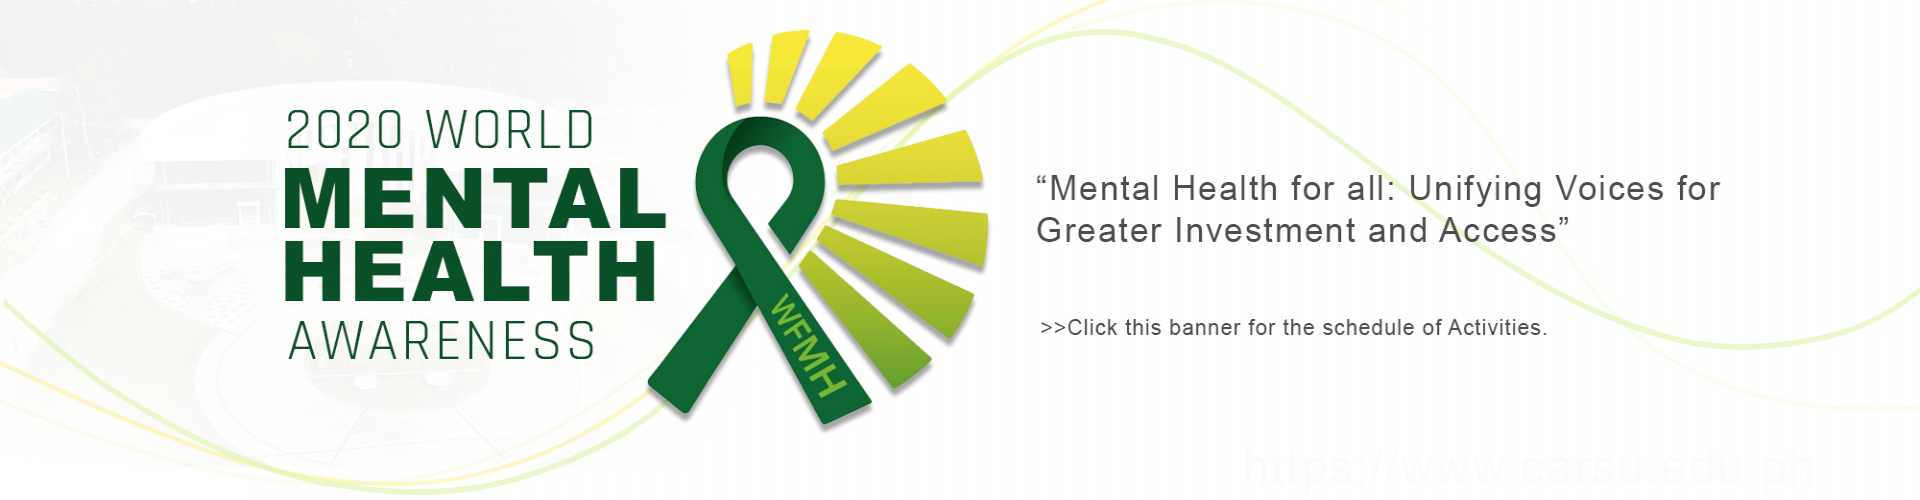 World Mental Health Awareness 2020